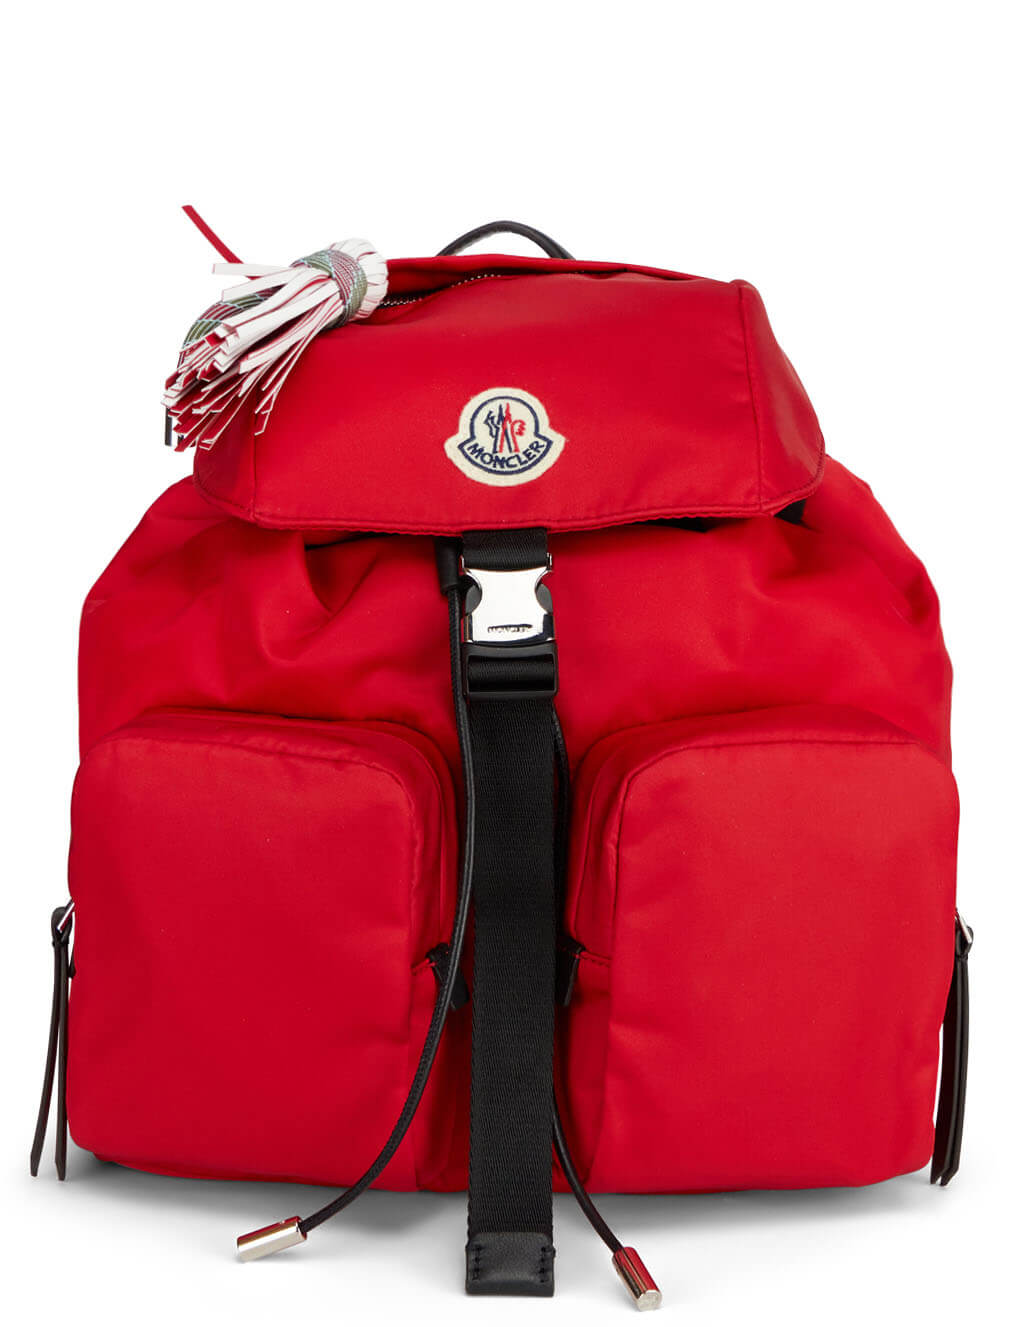 Women's Red Moncler Dauphine Large Backpack. 09B5A7000002SJJ431